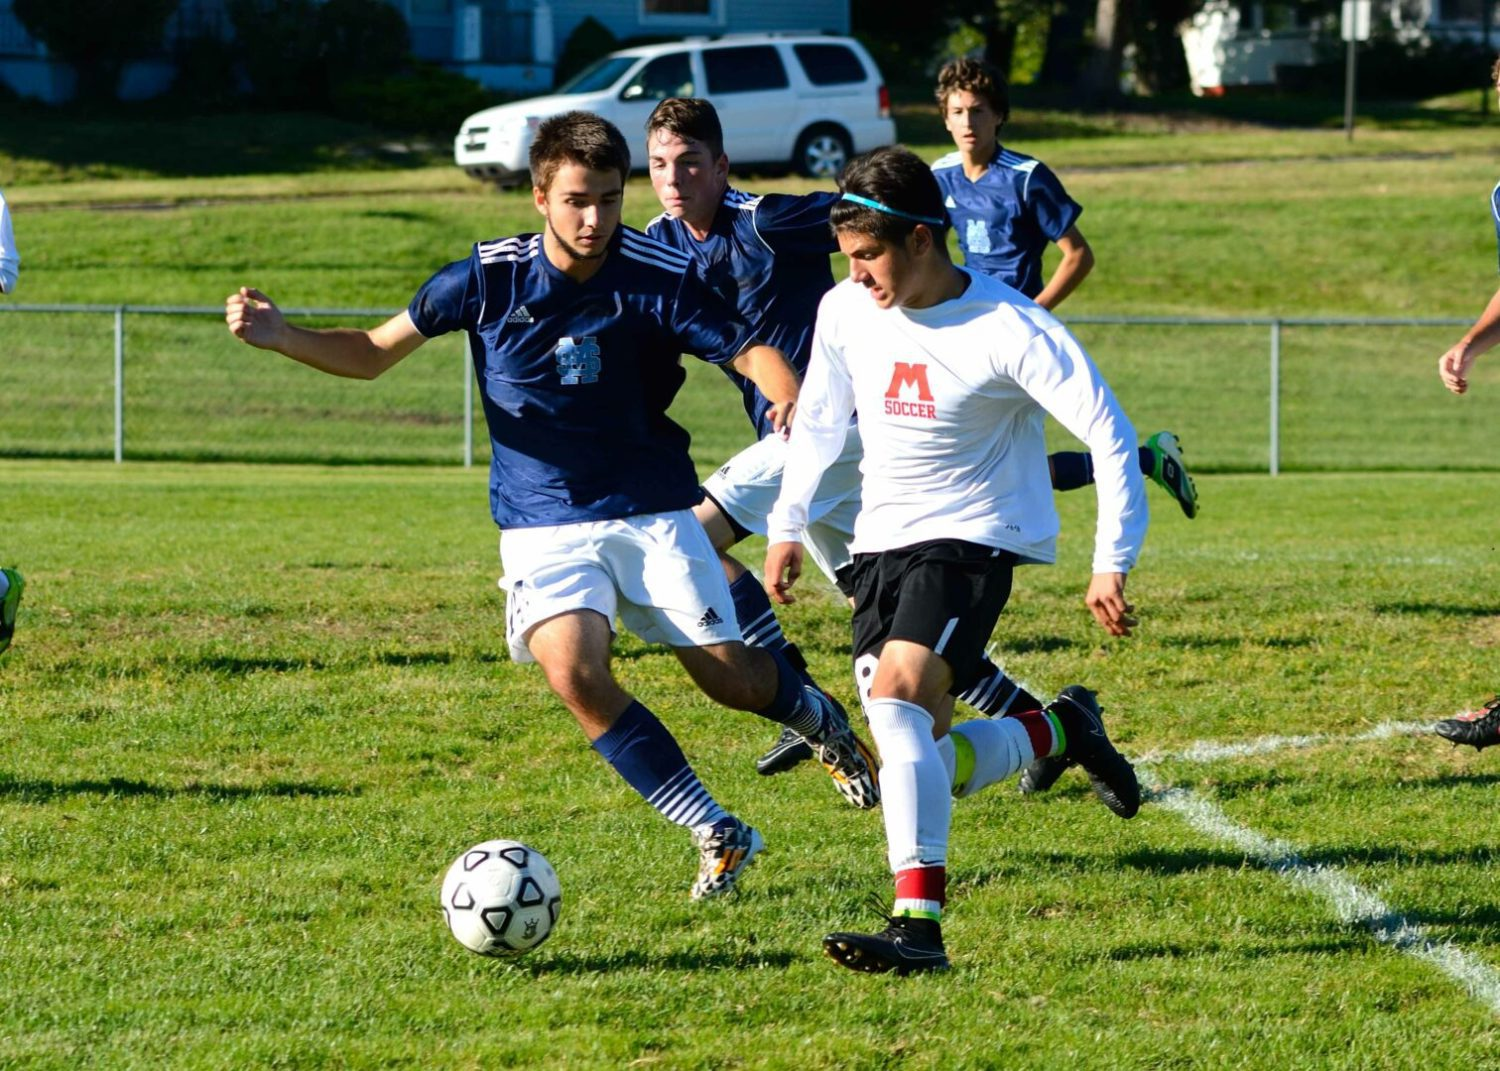 Muskegon blanks Muskegon Catholic 6-0 in non-league soccer matchup